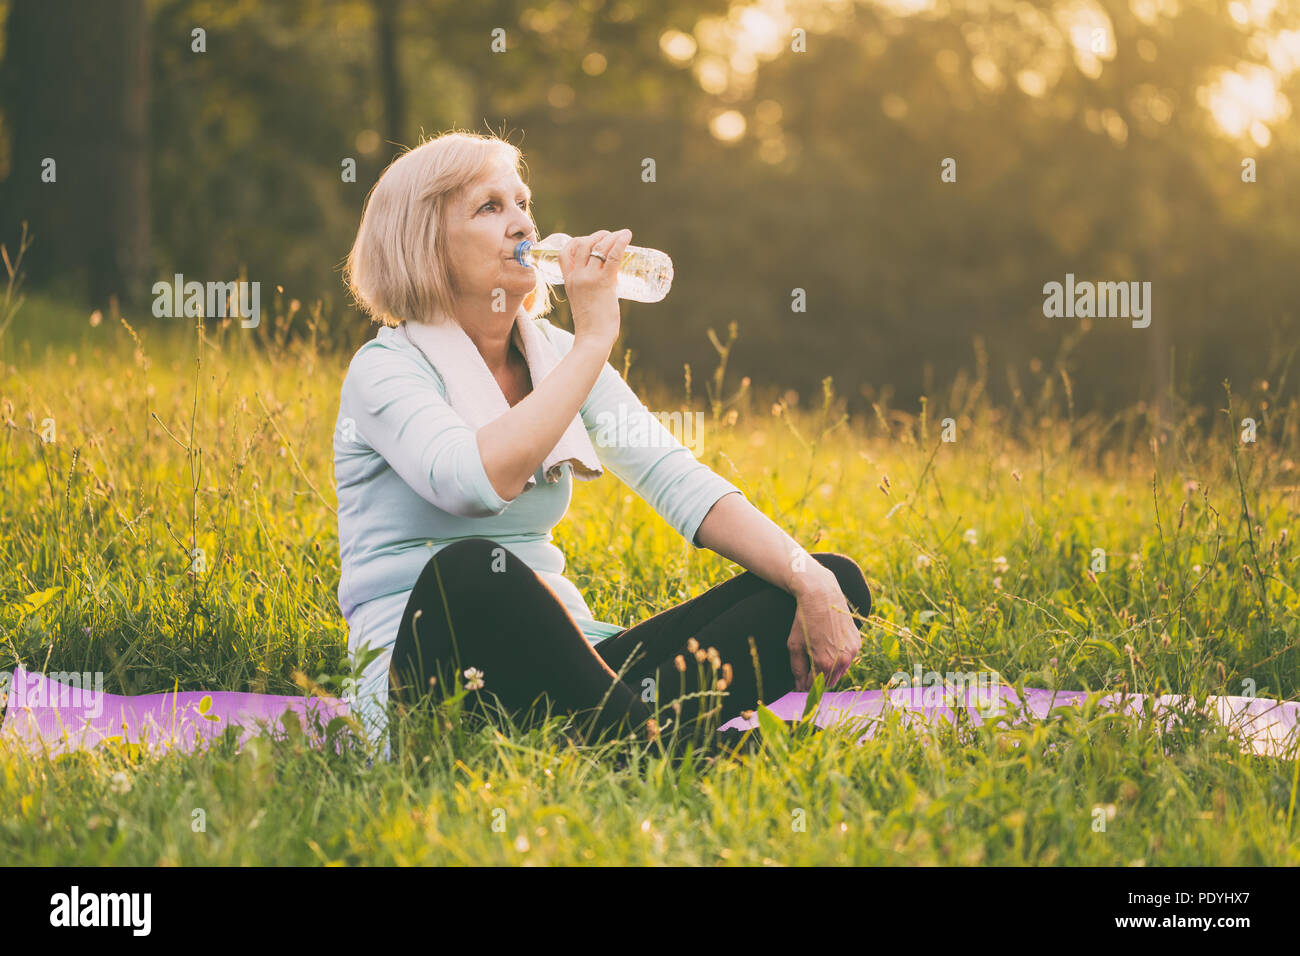 Active senior woman drinking water during exercise.Image is intentionally toned. - Stock Image